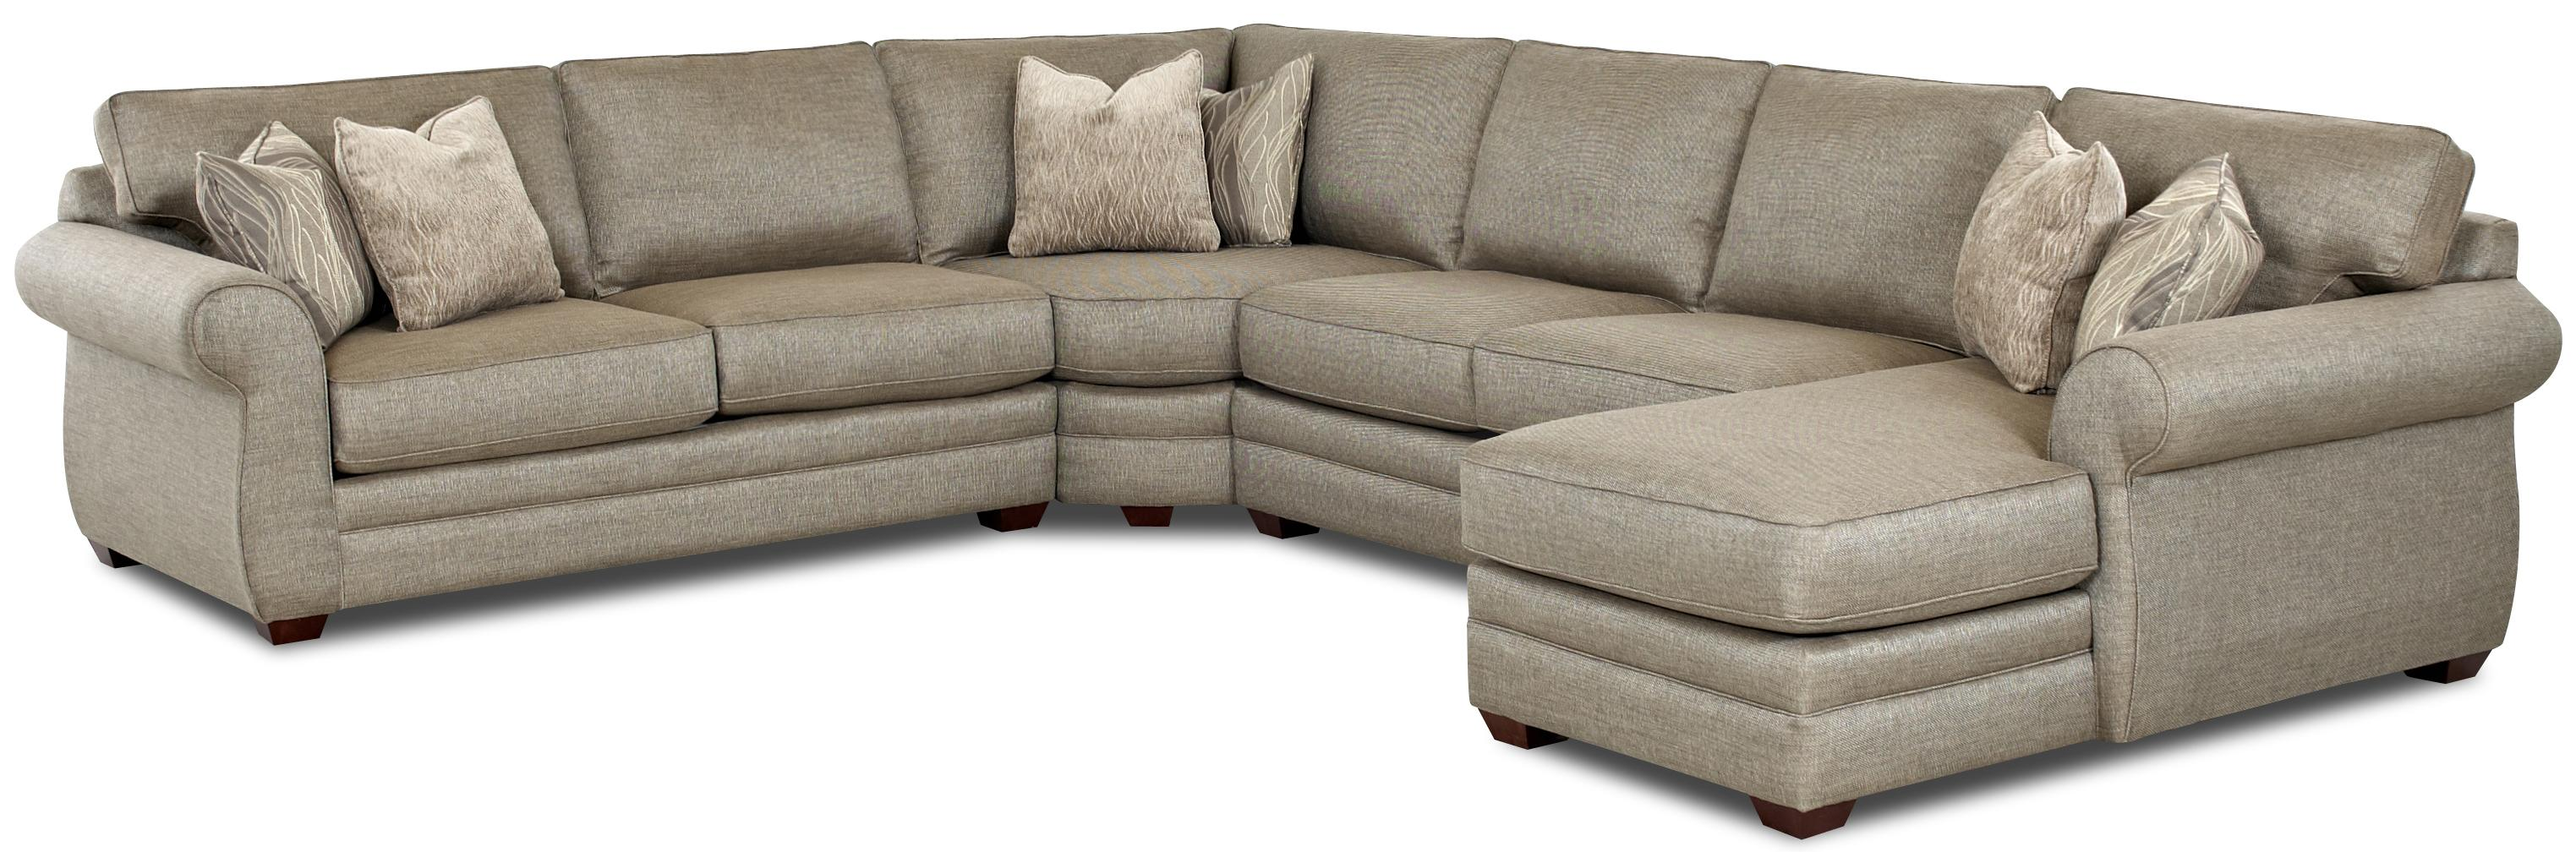 Klaussner clanton transitional sectional sofa with right chaise and full sleeper olinde 39 s Loveseat chaise sectional